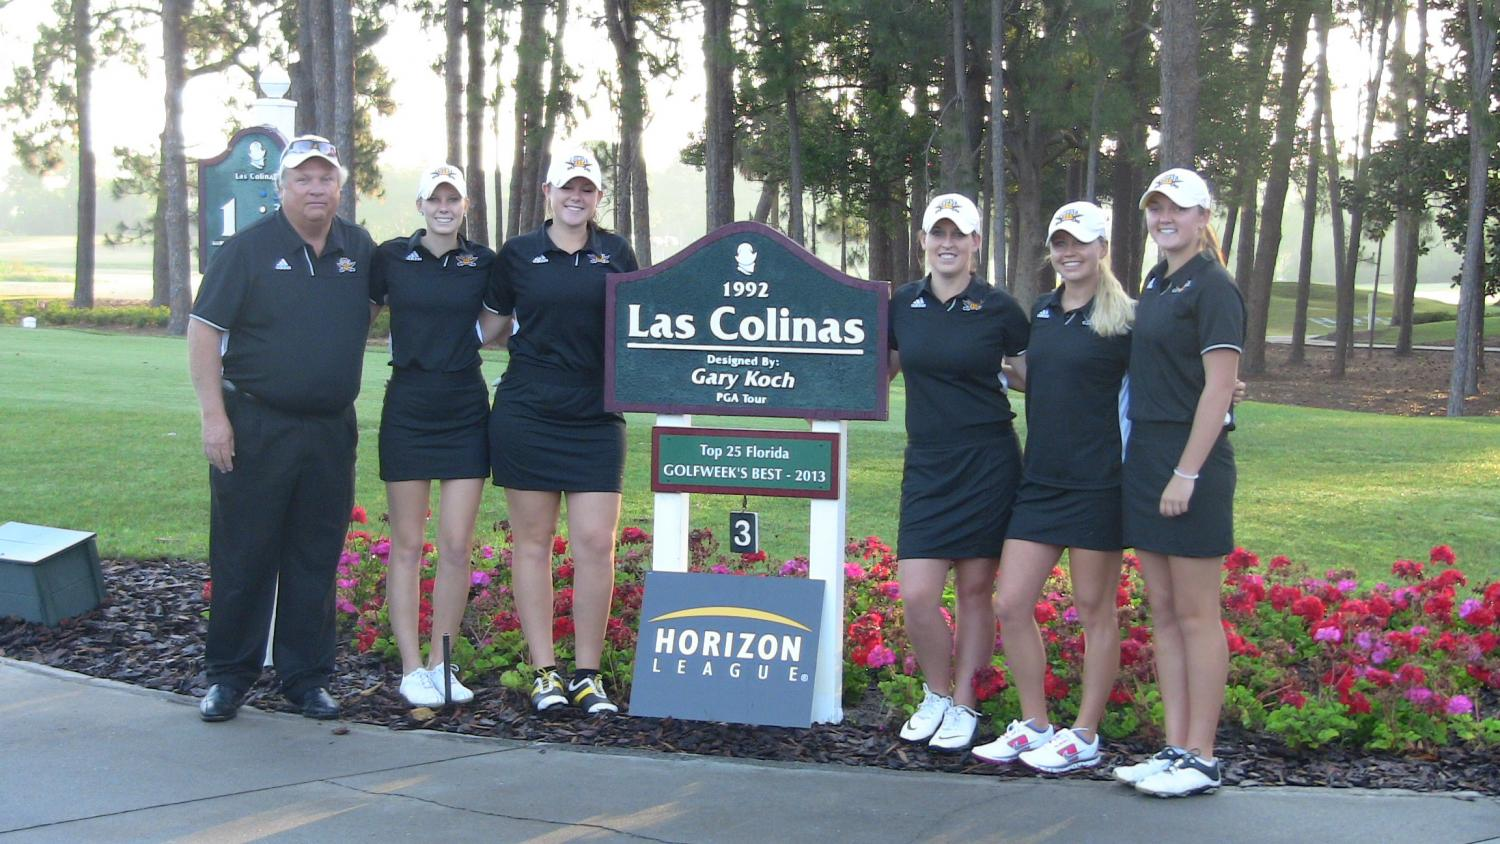 The+NKU+women%27s+golf+team+poses+for+a+picture+at+Las+Colinas+golf+course+during+the+Horizon+League+tournament